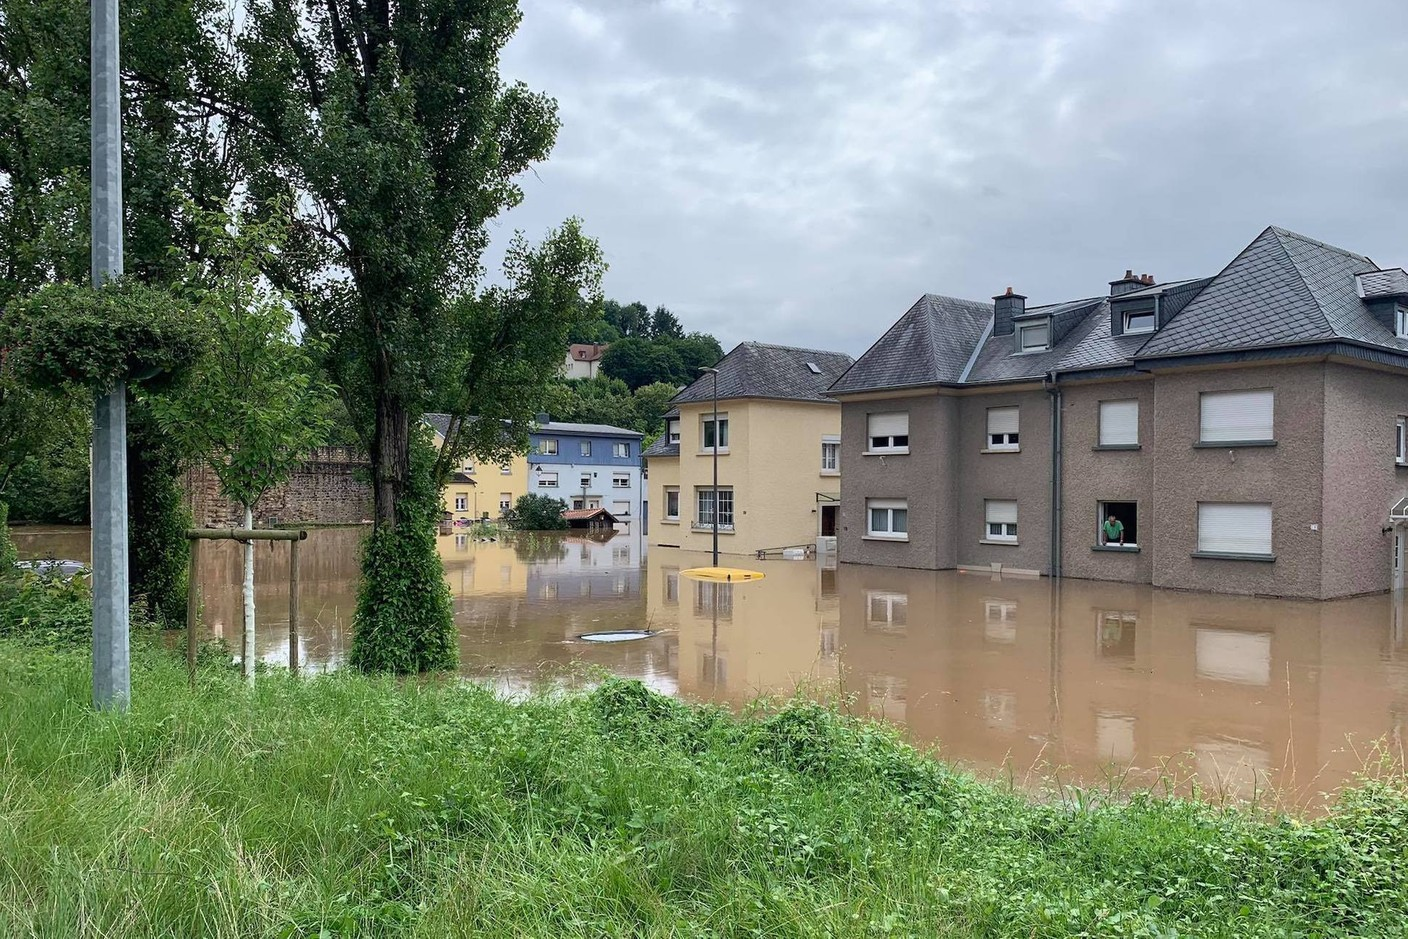 A view of a residential area in Echternach town, 15 July 2021. Photo: Lisa Grisius